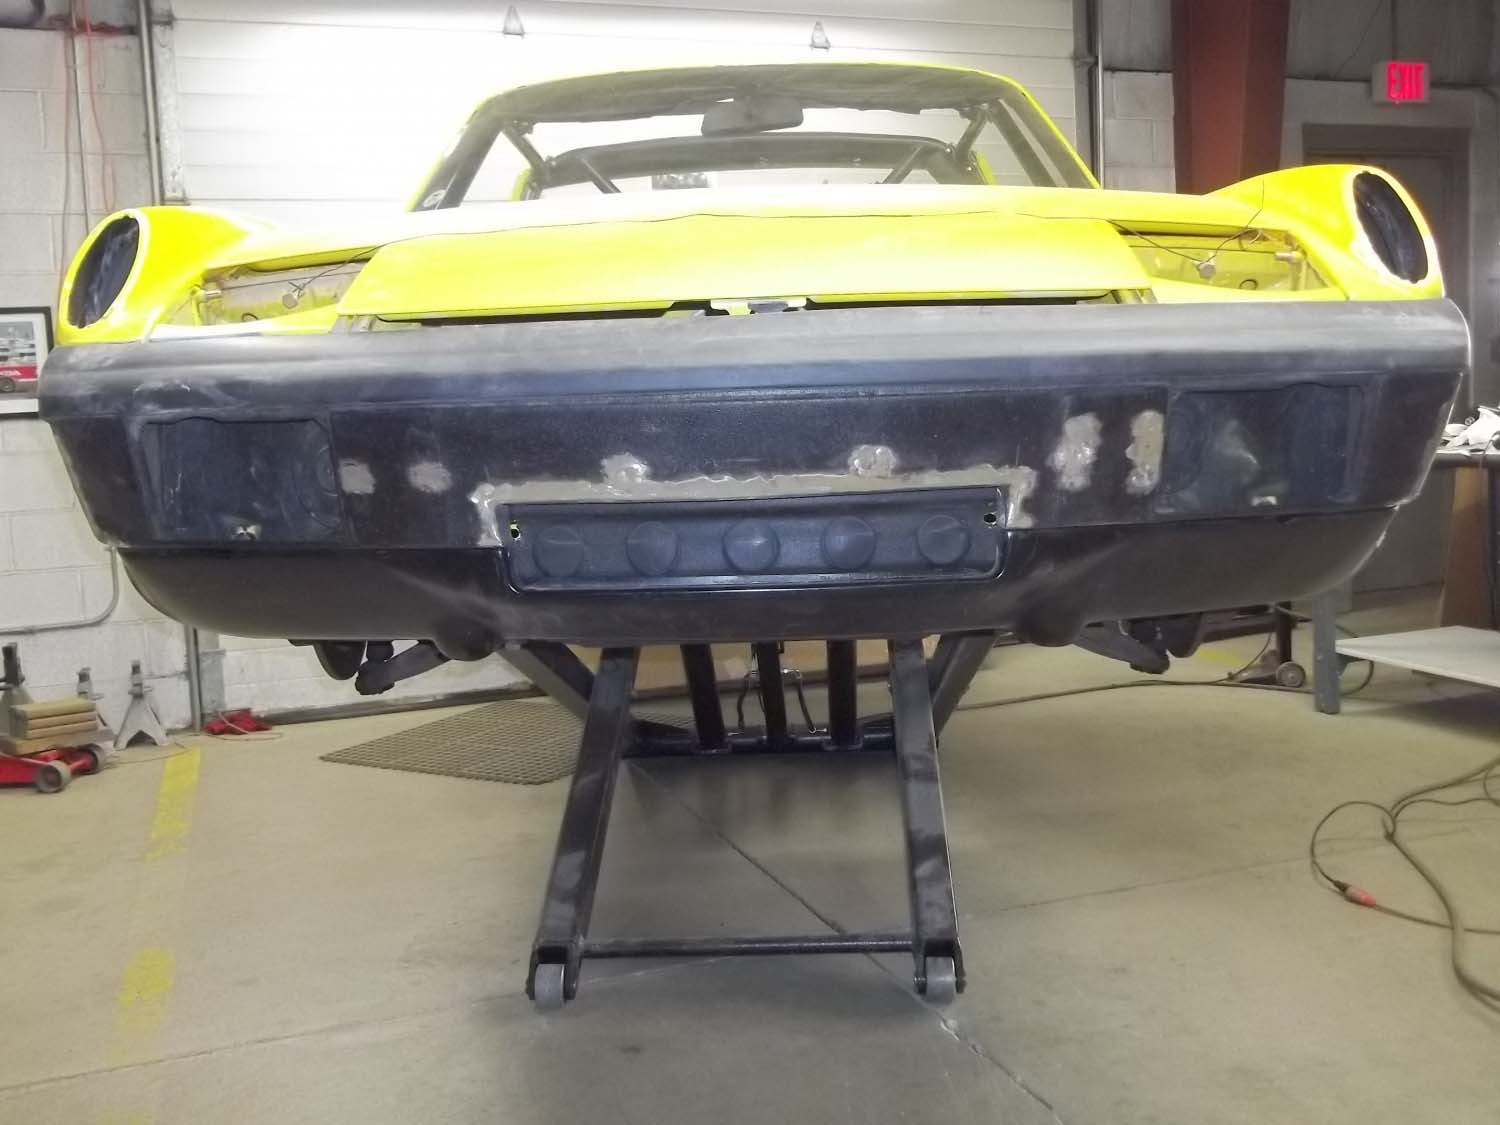 1974 Porsche 914-6 | Paintwerks Custom & Restoration Refinishing